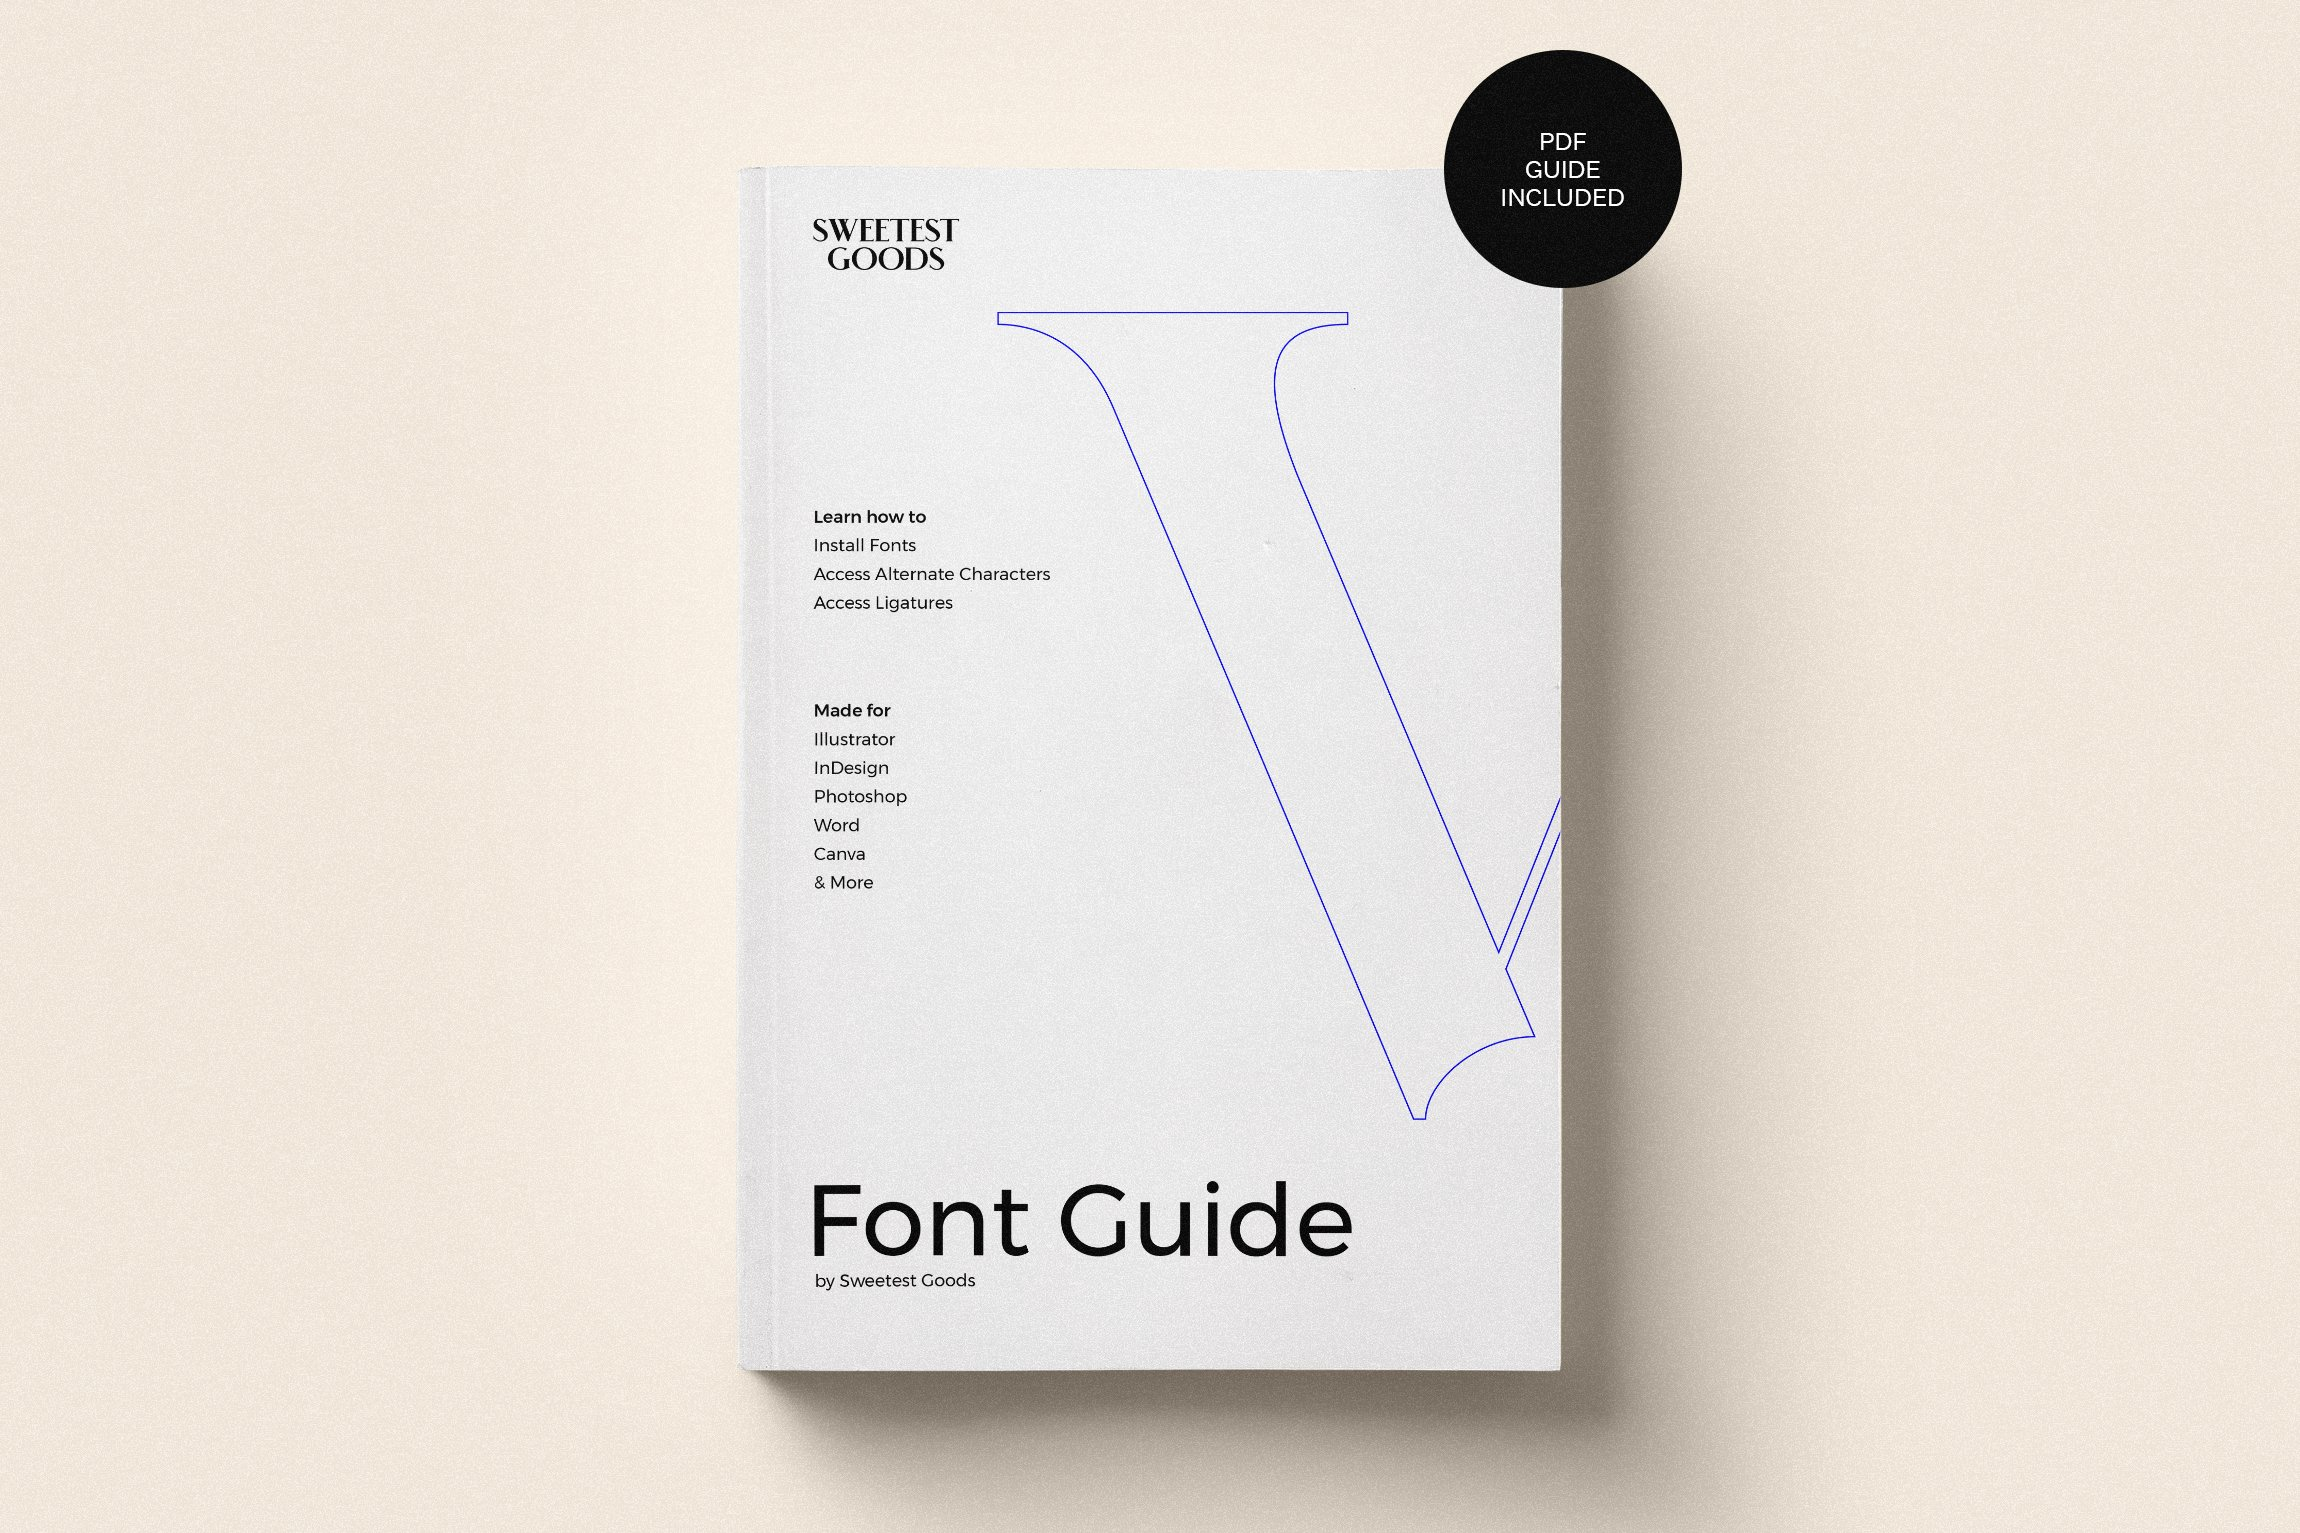 vultura font free logos sweetest goods guide 15